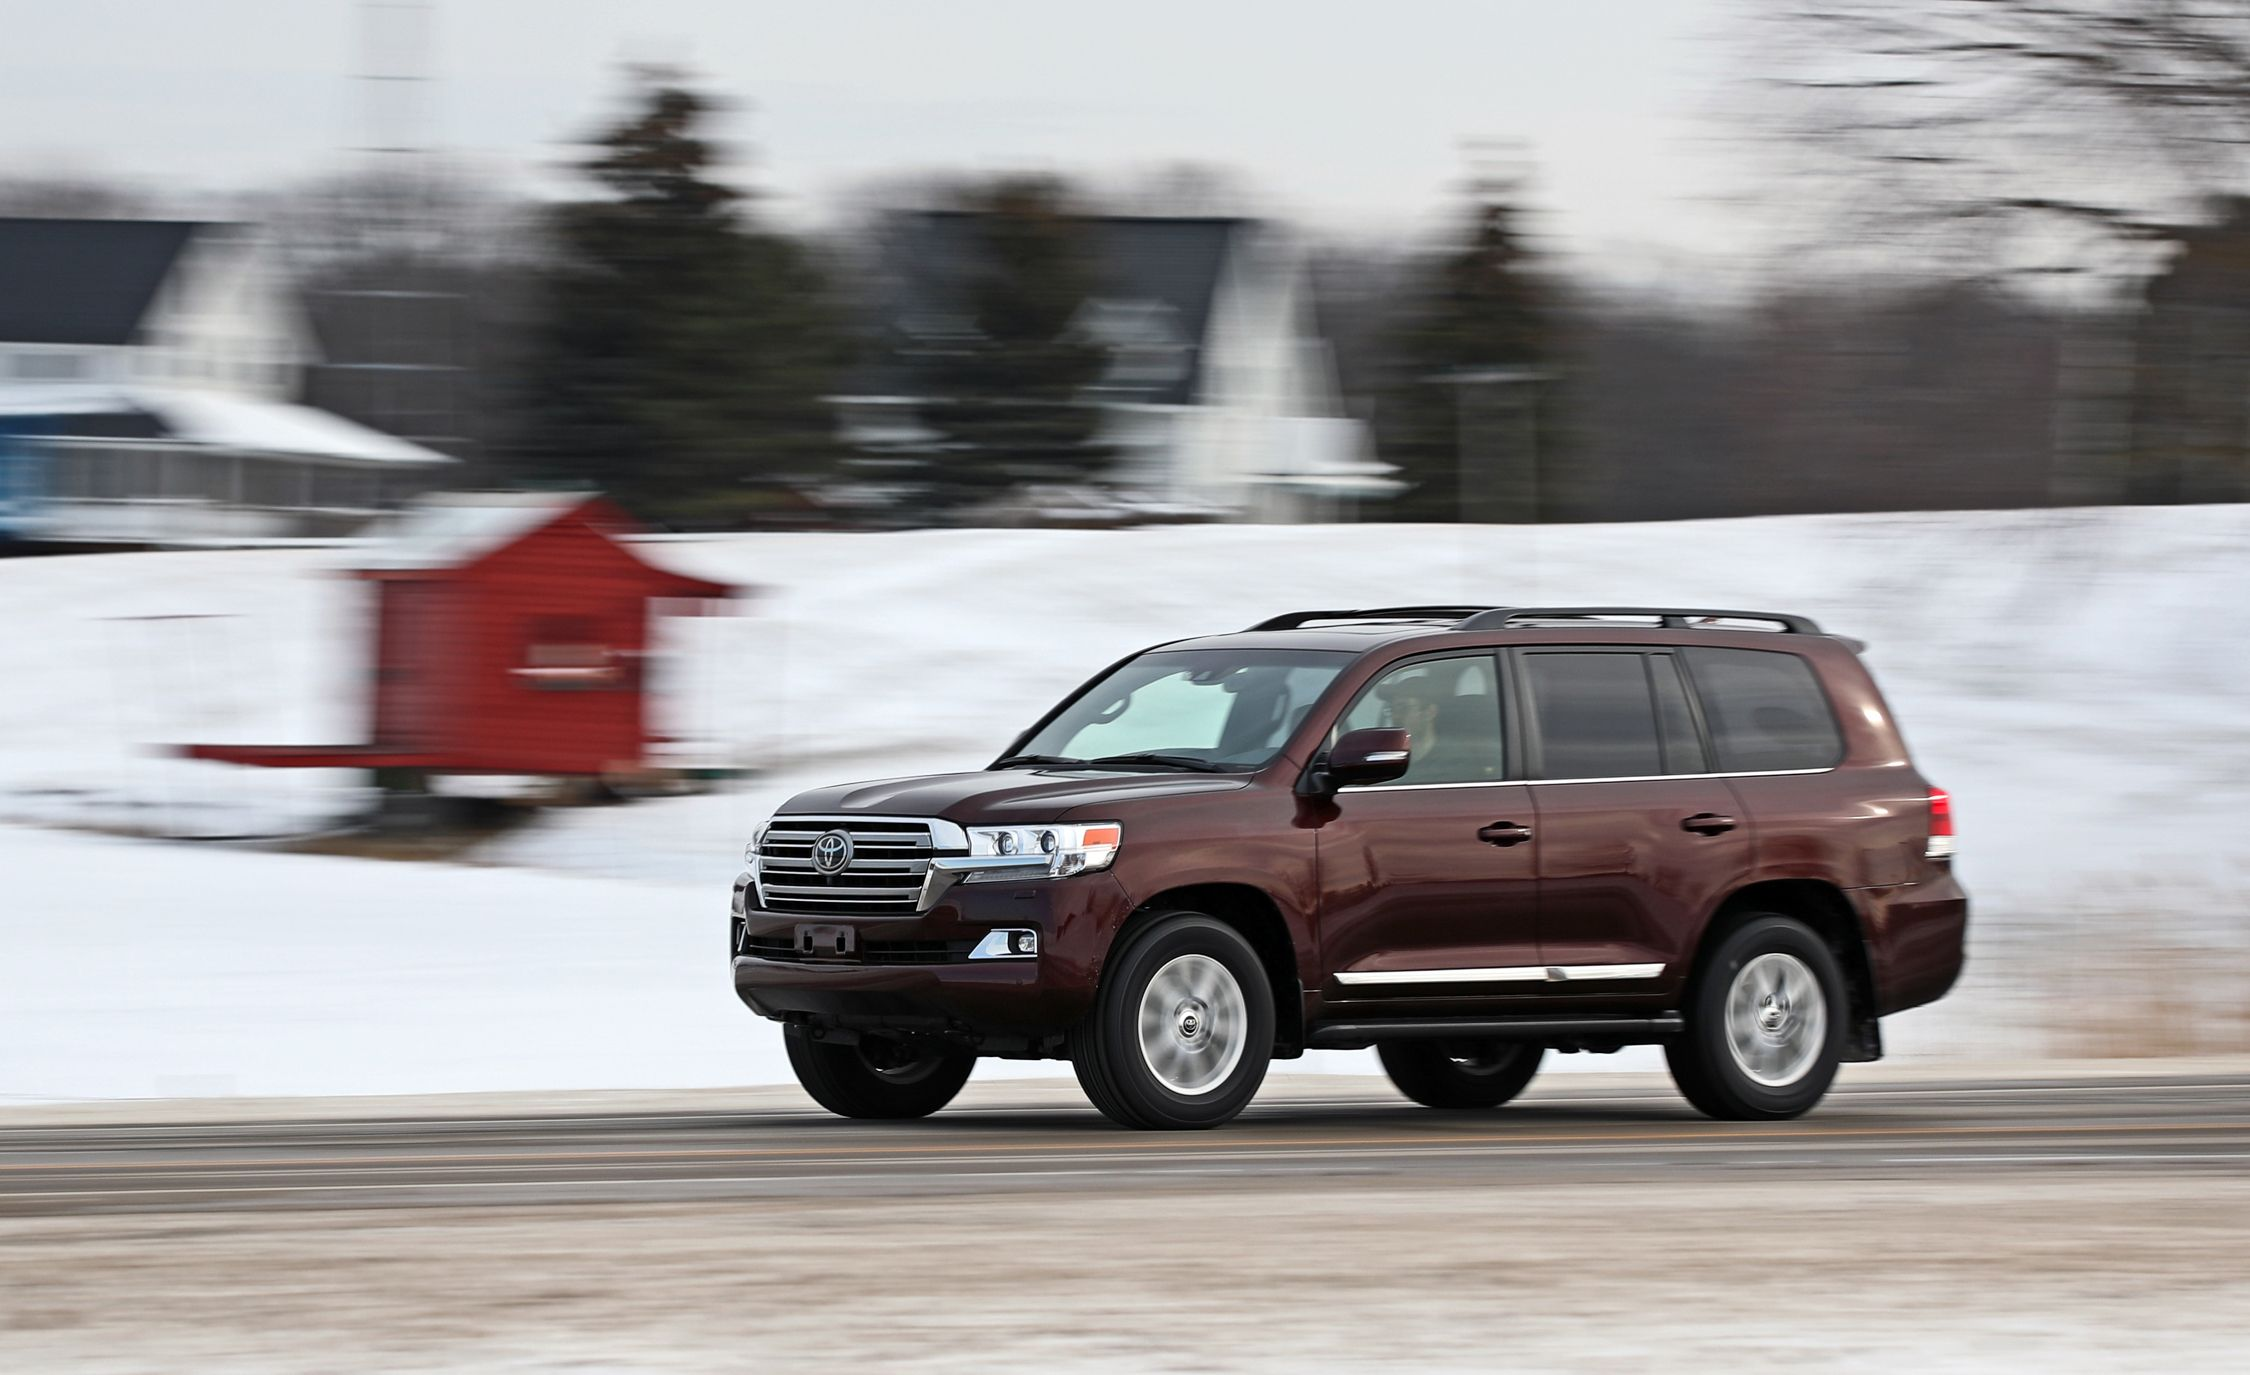 These Vehicles Scored the Worst Real-World Fuel Economy in Our